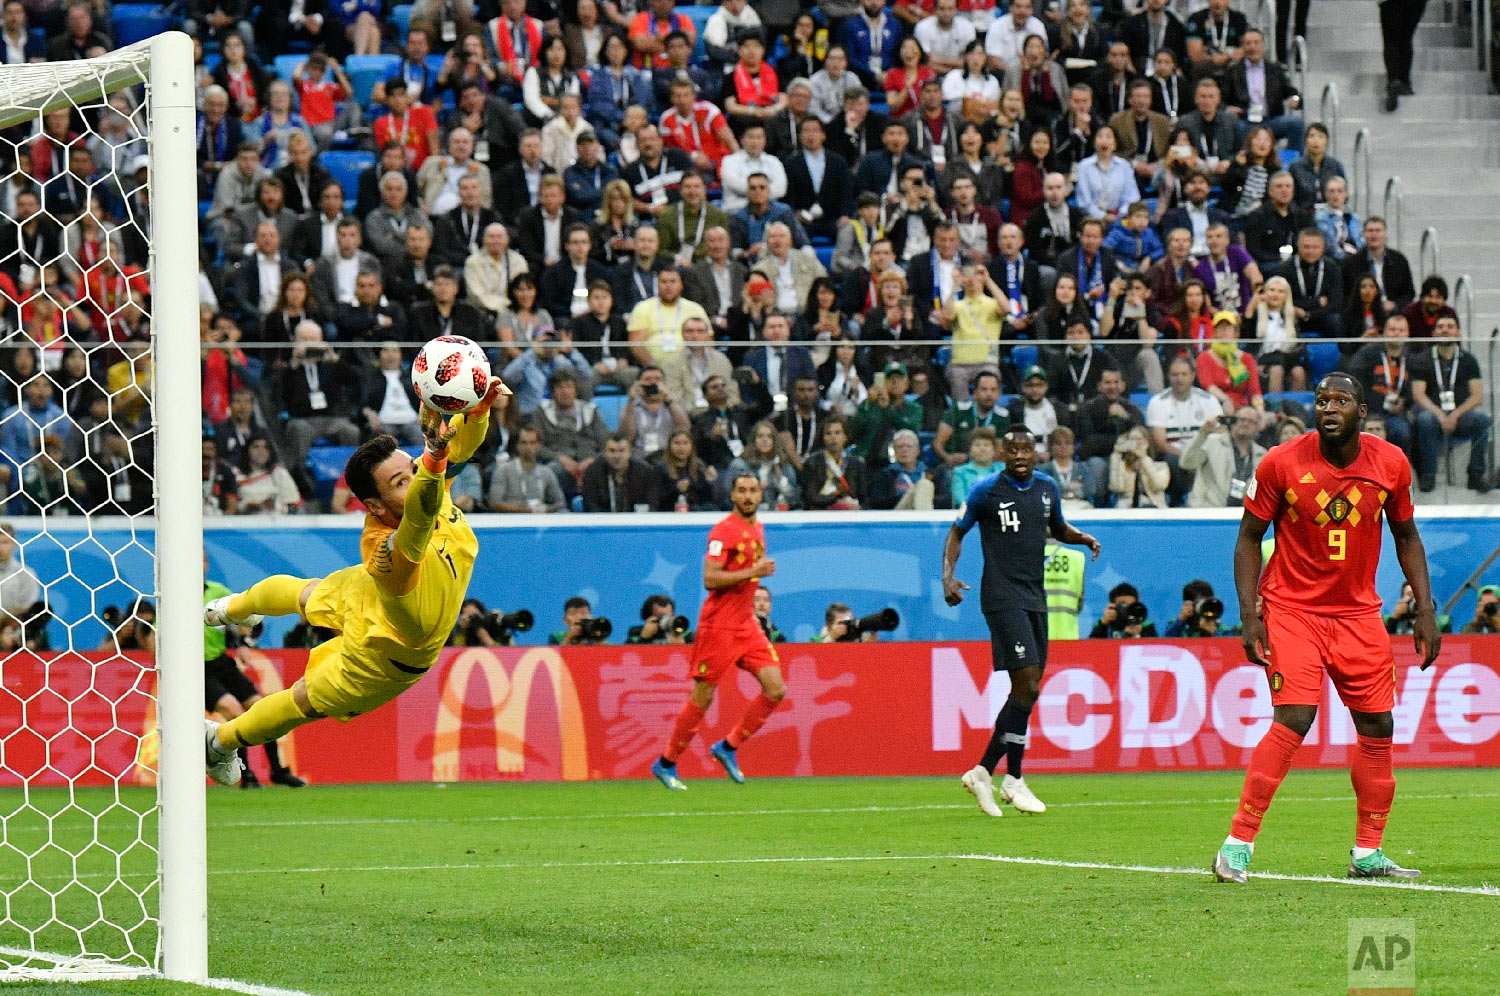 France goalkeeper Hugo Lloris deflects a shot by Belgium's Toby Alderweireld during the semifinal match between France and Belgium at the 2018 soccer World Cup in the St. Petersburg Stadium in St. Petersburg, Russia, Tuesday, July 10, 2018. (AP Photo/Martin Meissner)